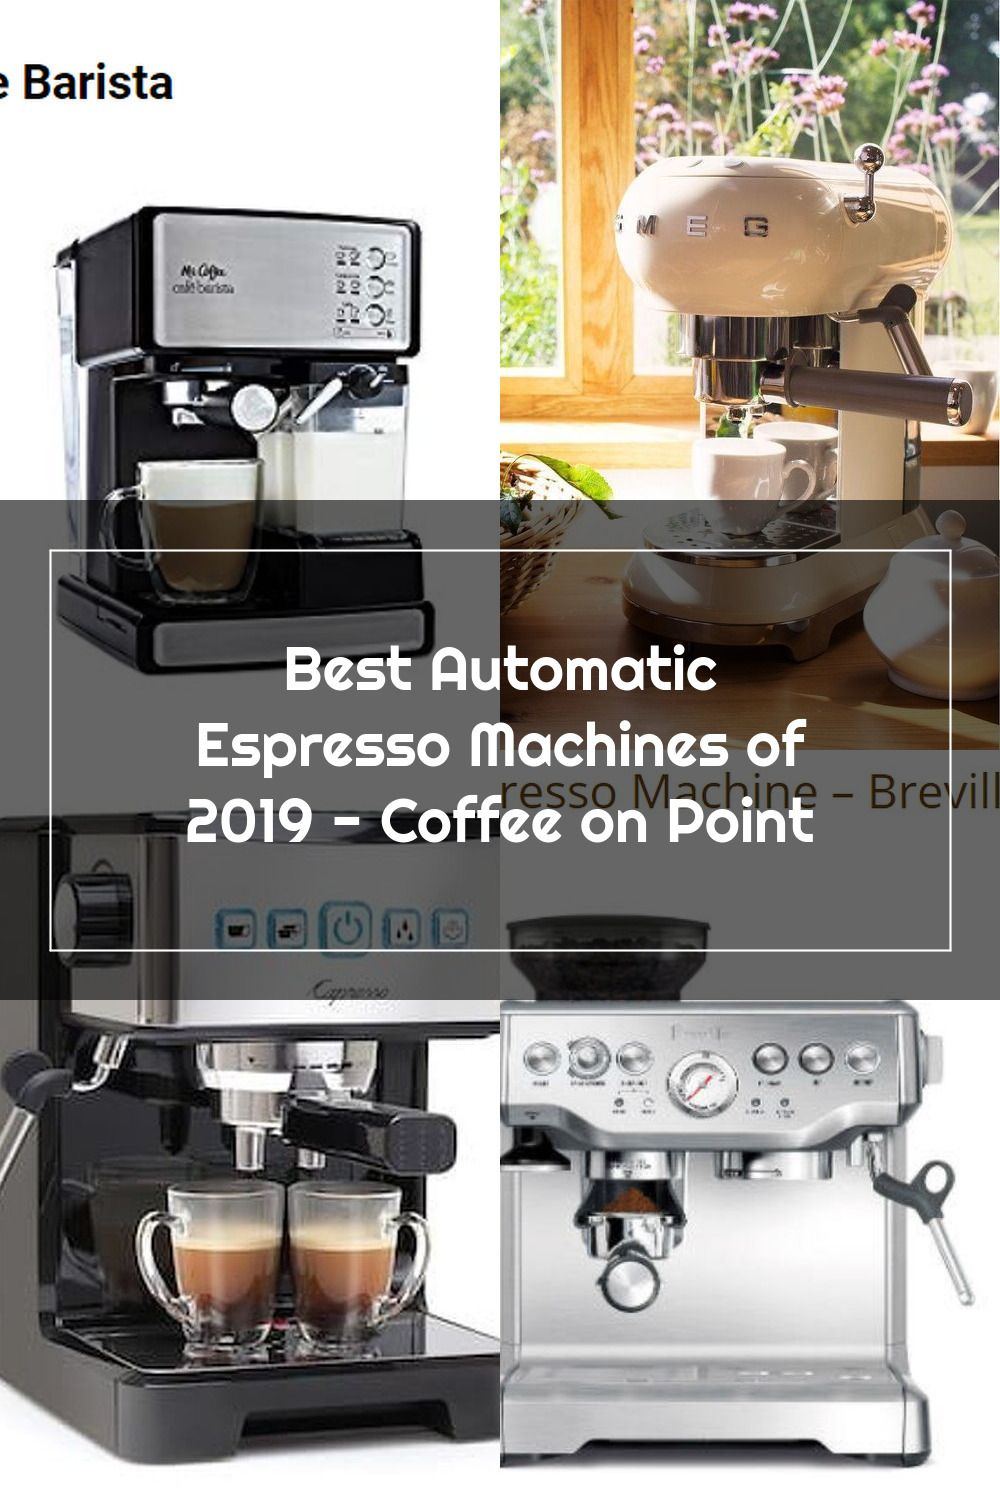 Best Automatic Espresso Machines of 2019 Coffee on Point